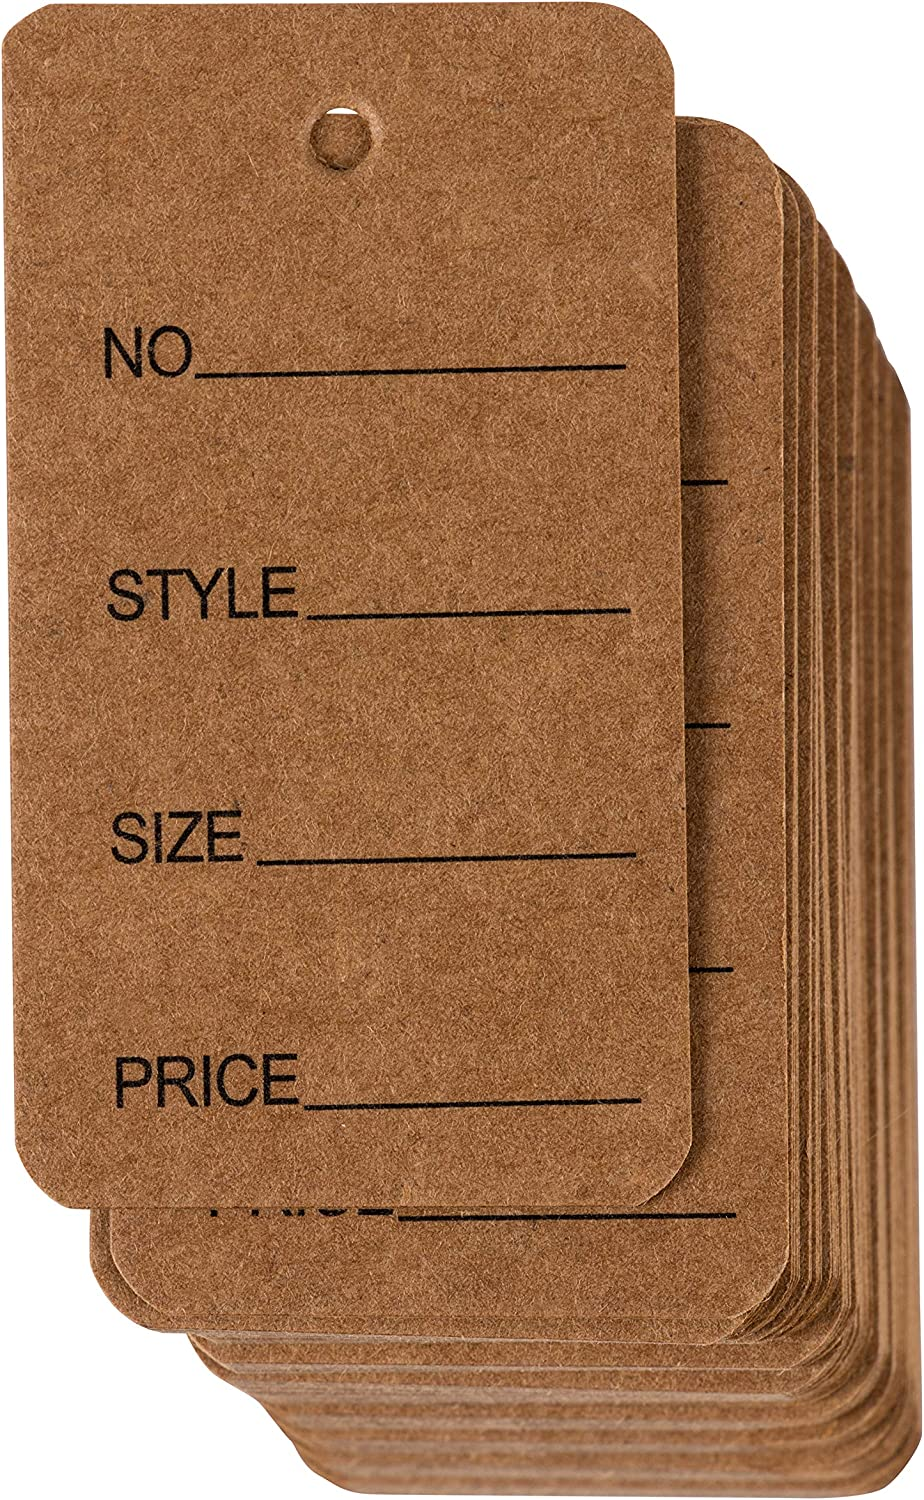 Price Tags - 1000-Pack Cloth Tags, Garment Tags, Writable Tags, Hang Labels, Size Name Style Tag, Kraft Paper Tag, for Business, Retail, Shop, Natural Brown, 1.5 x 2.7 Inches